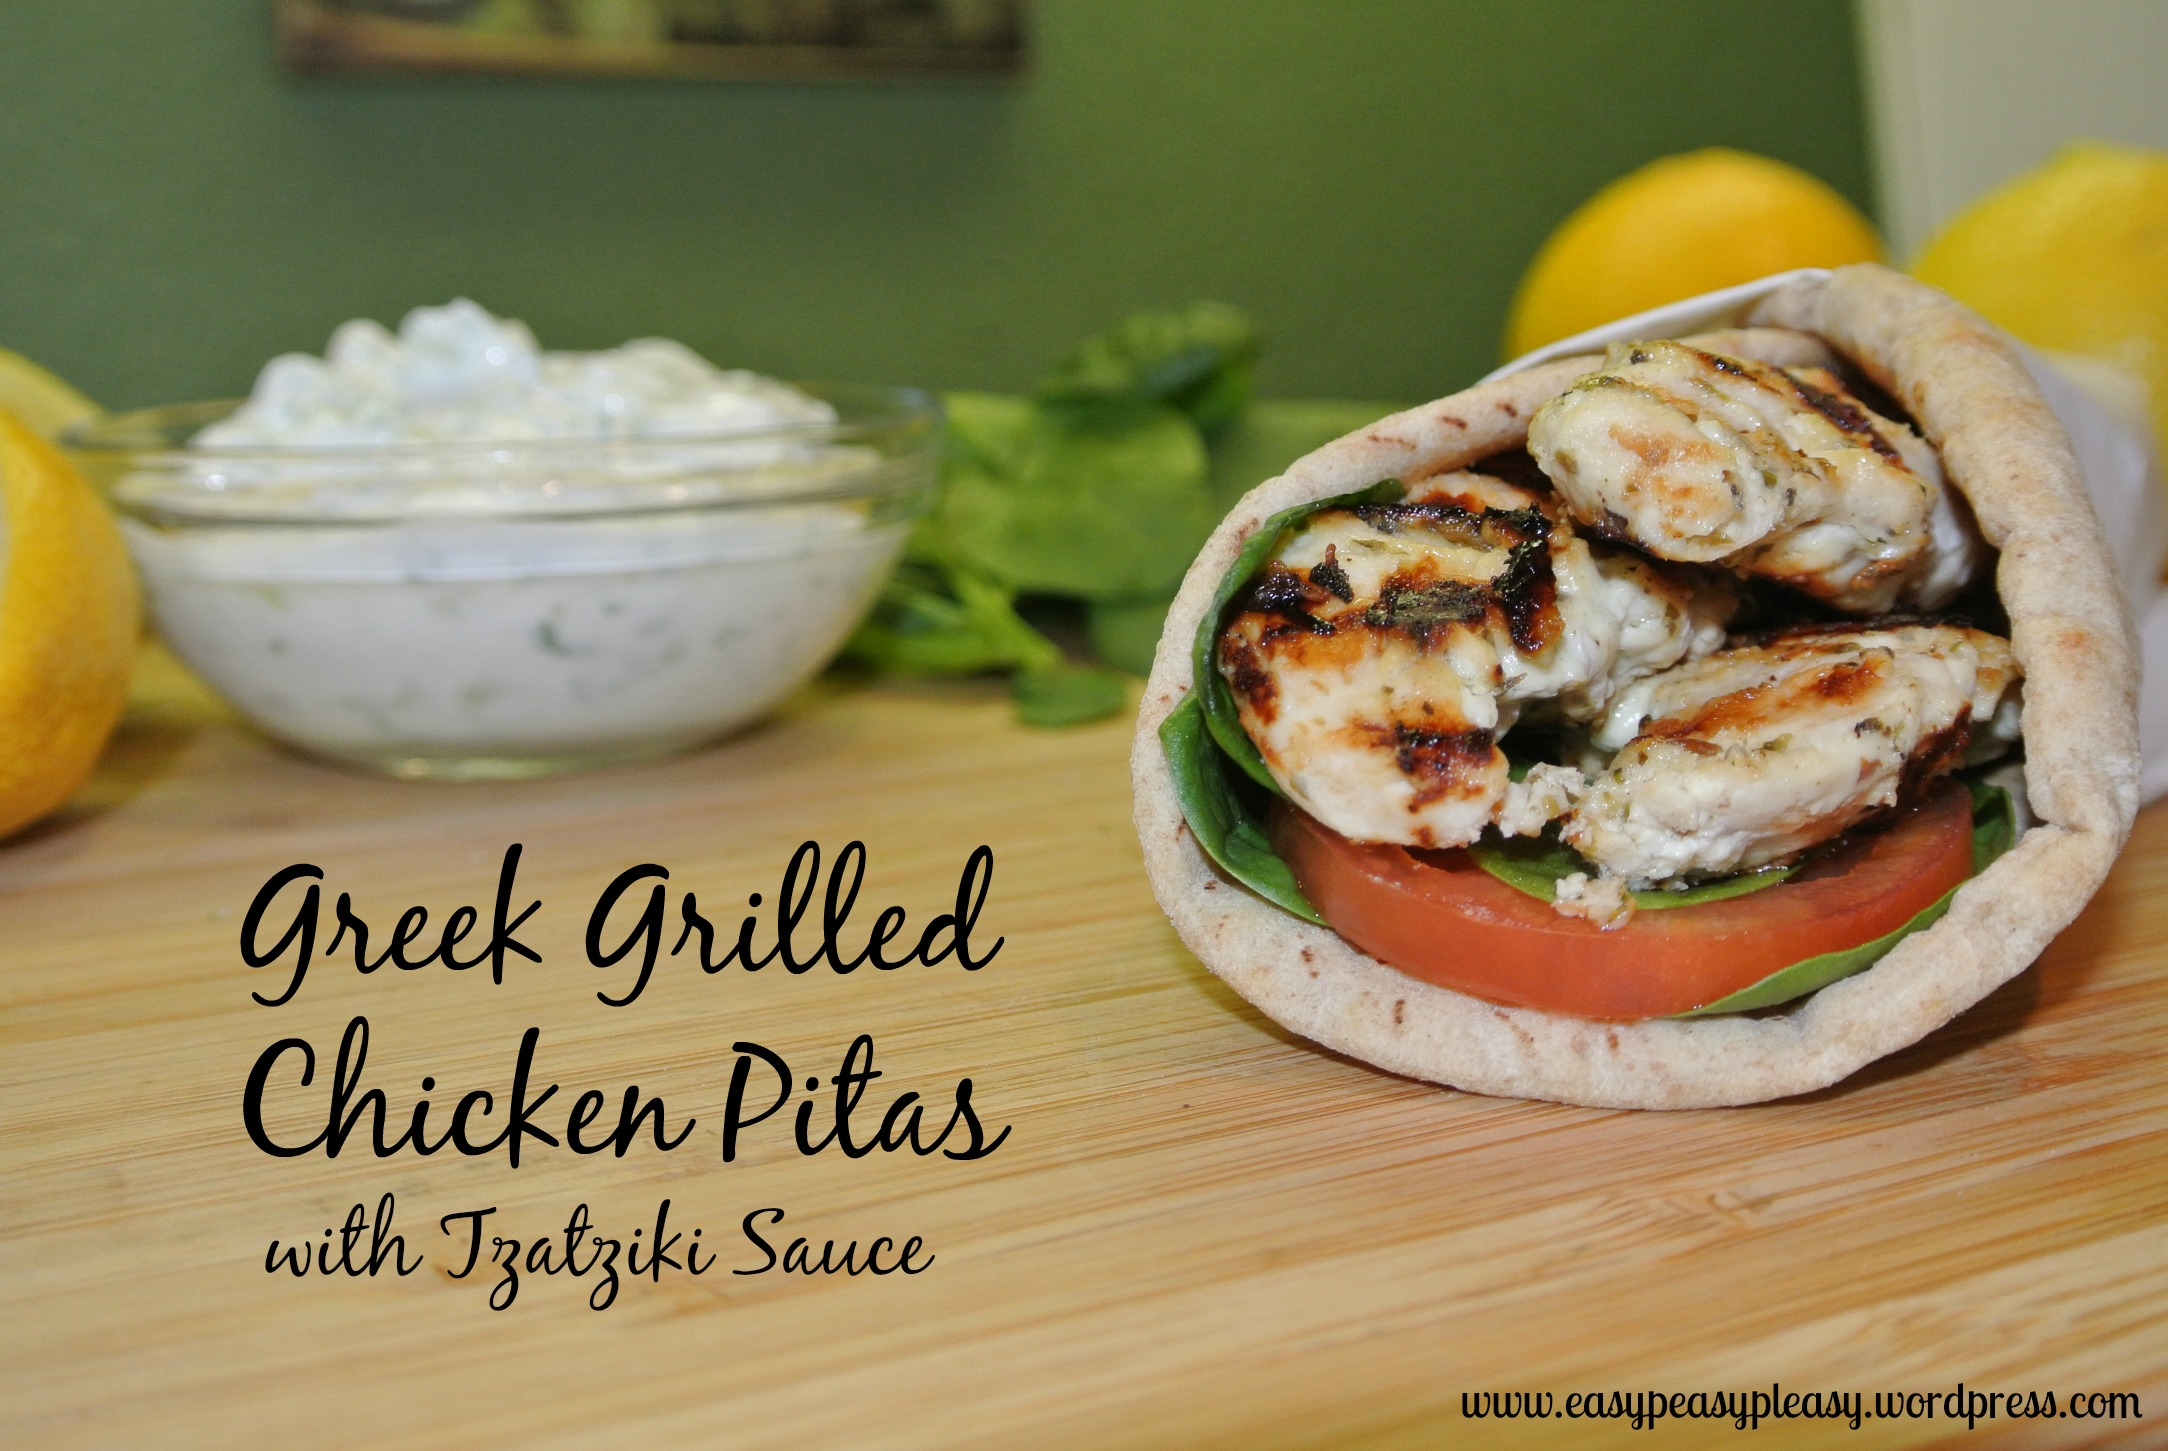 Easy Greek Grilled Chicken Pitas Recipe with Tzatziki Sauce